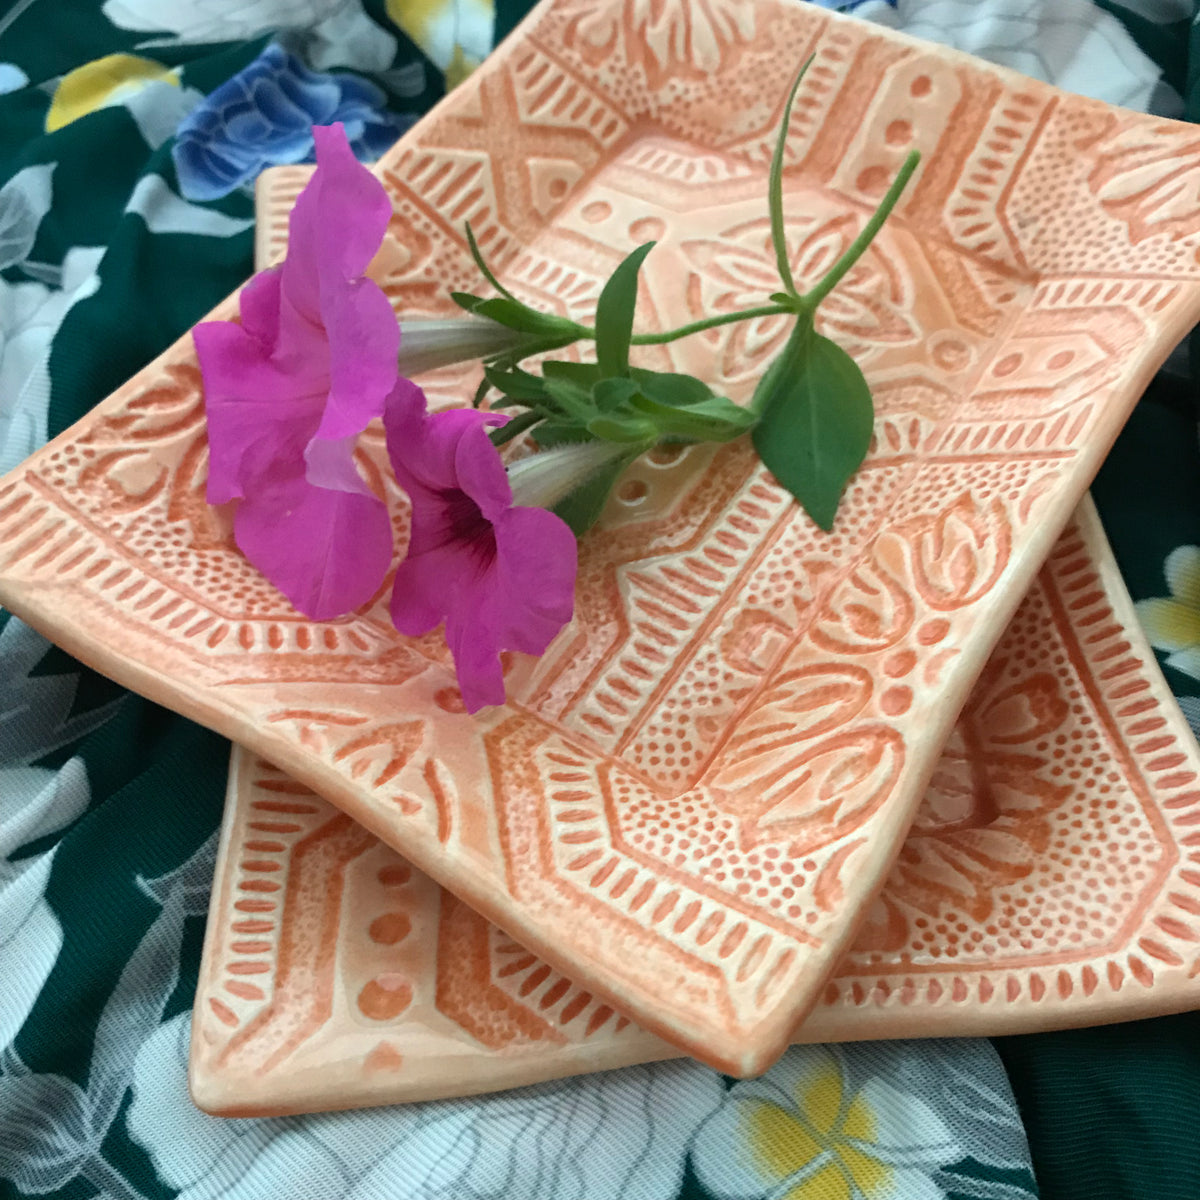 Our Handmade Earthenware Tray Is Glazed In a Pretty Orange Color.